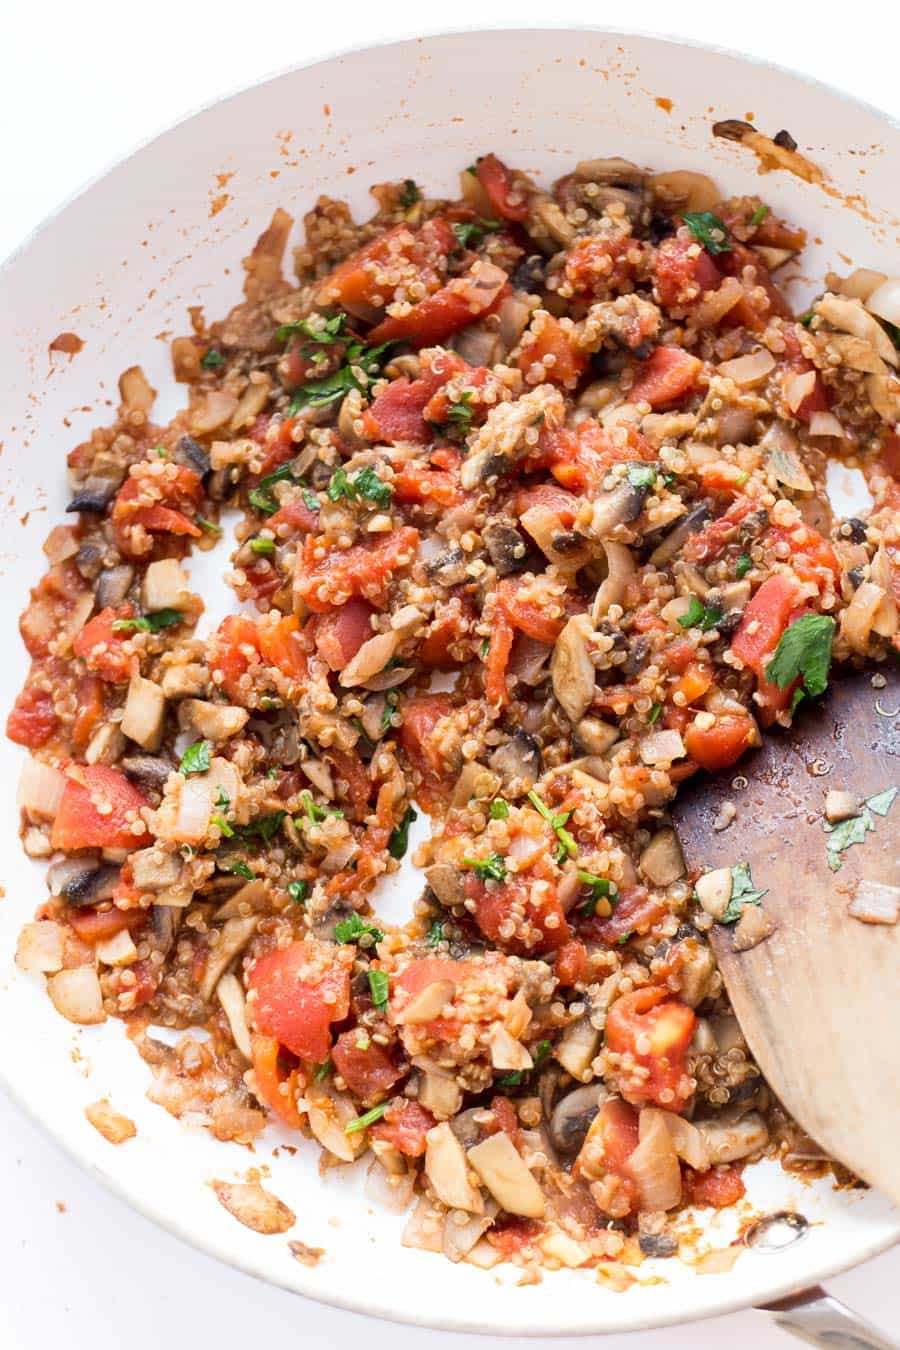 How to make THE BEST Quinoa Stuffed Eggplant  -- in just 30 MINUTES!